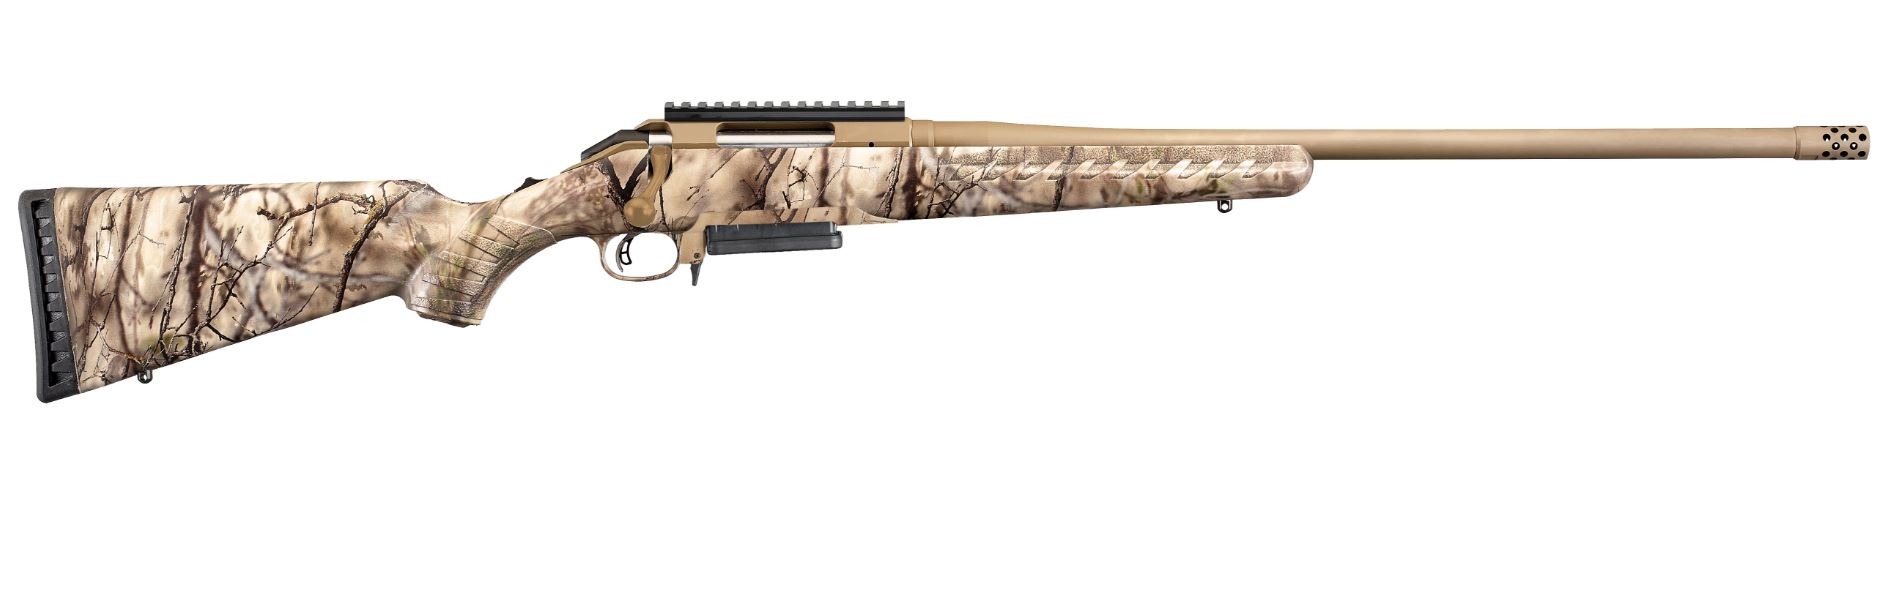 Ruger American Rifle 308 Win